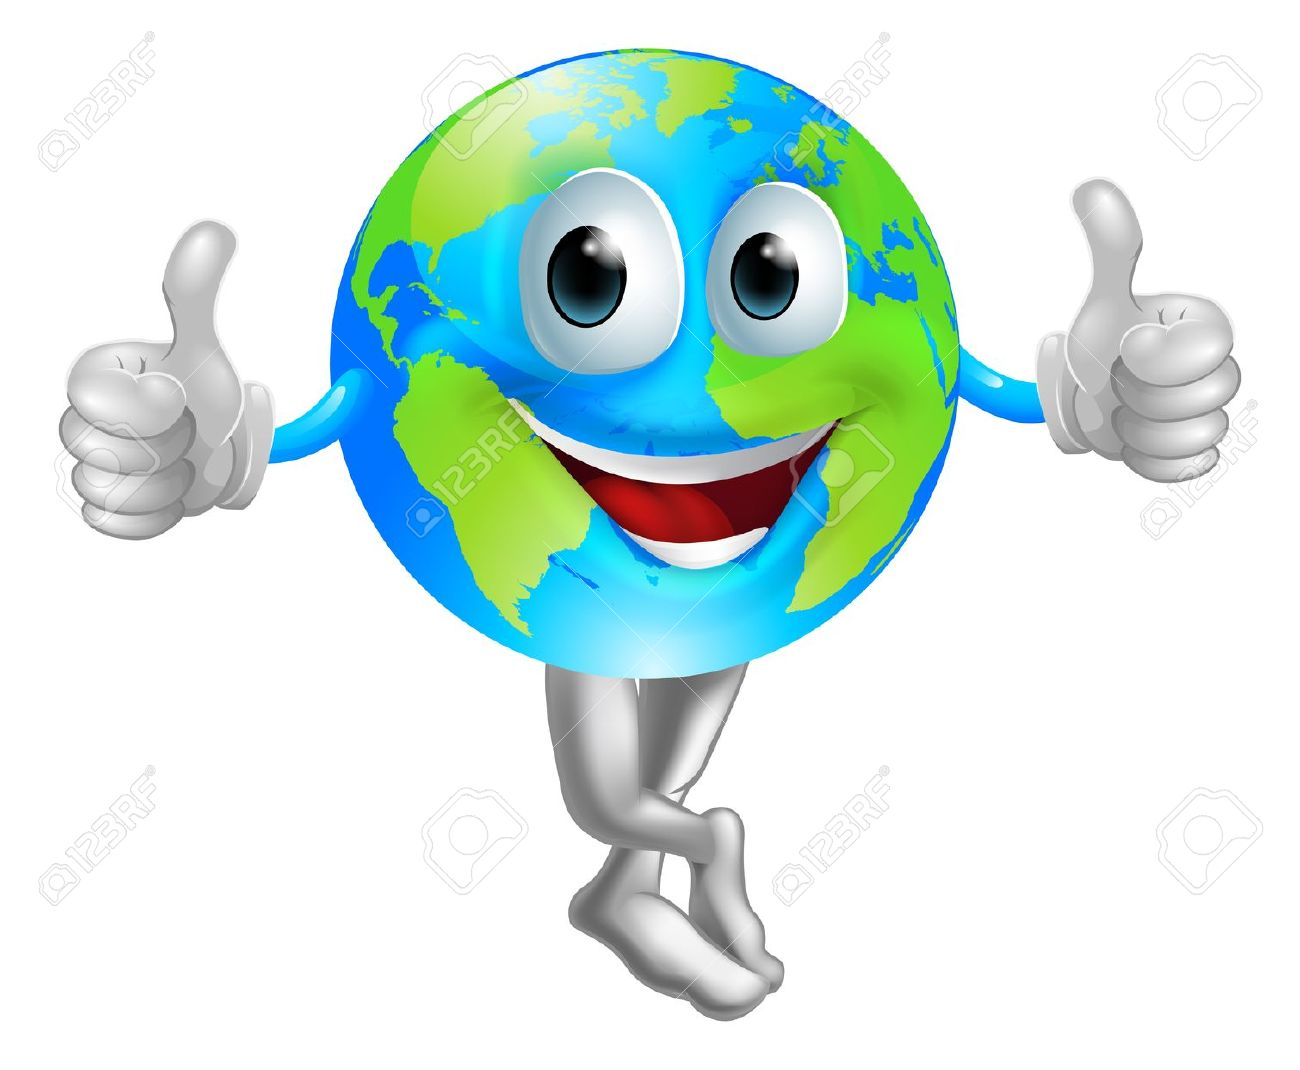 1300x1070 Smiley Face Clip Art Thumbs Up Thumbs Down